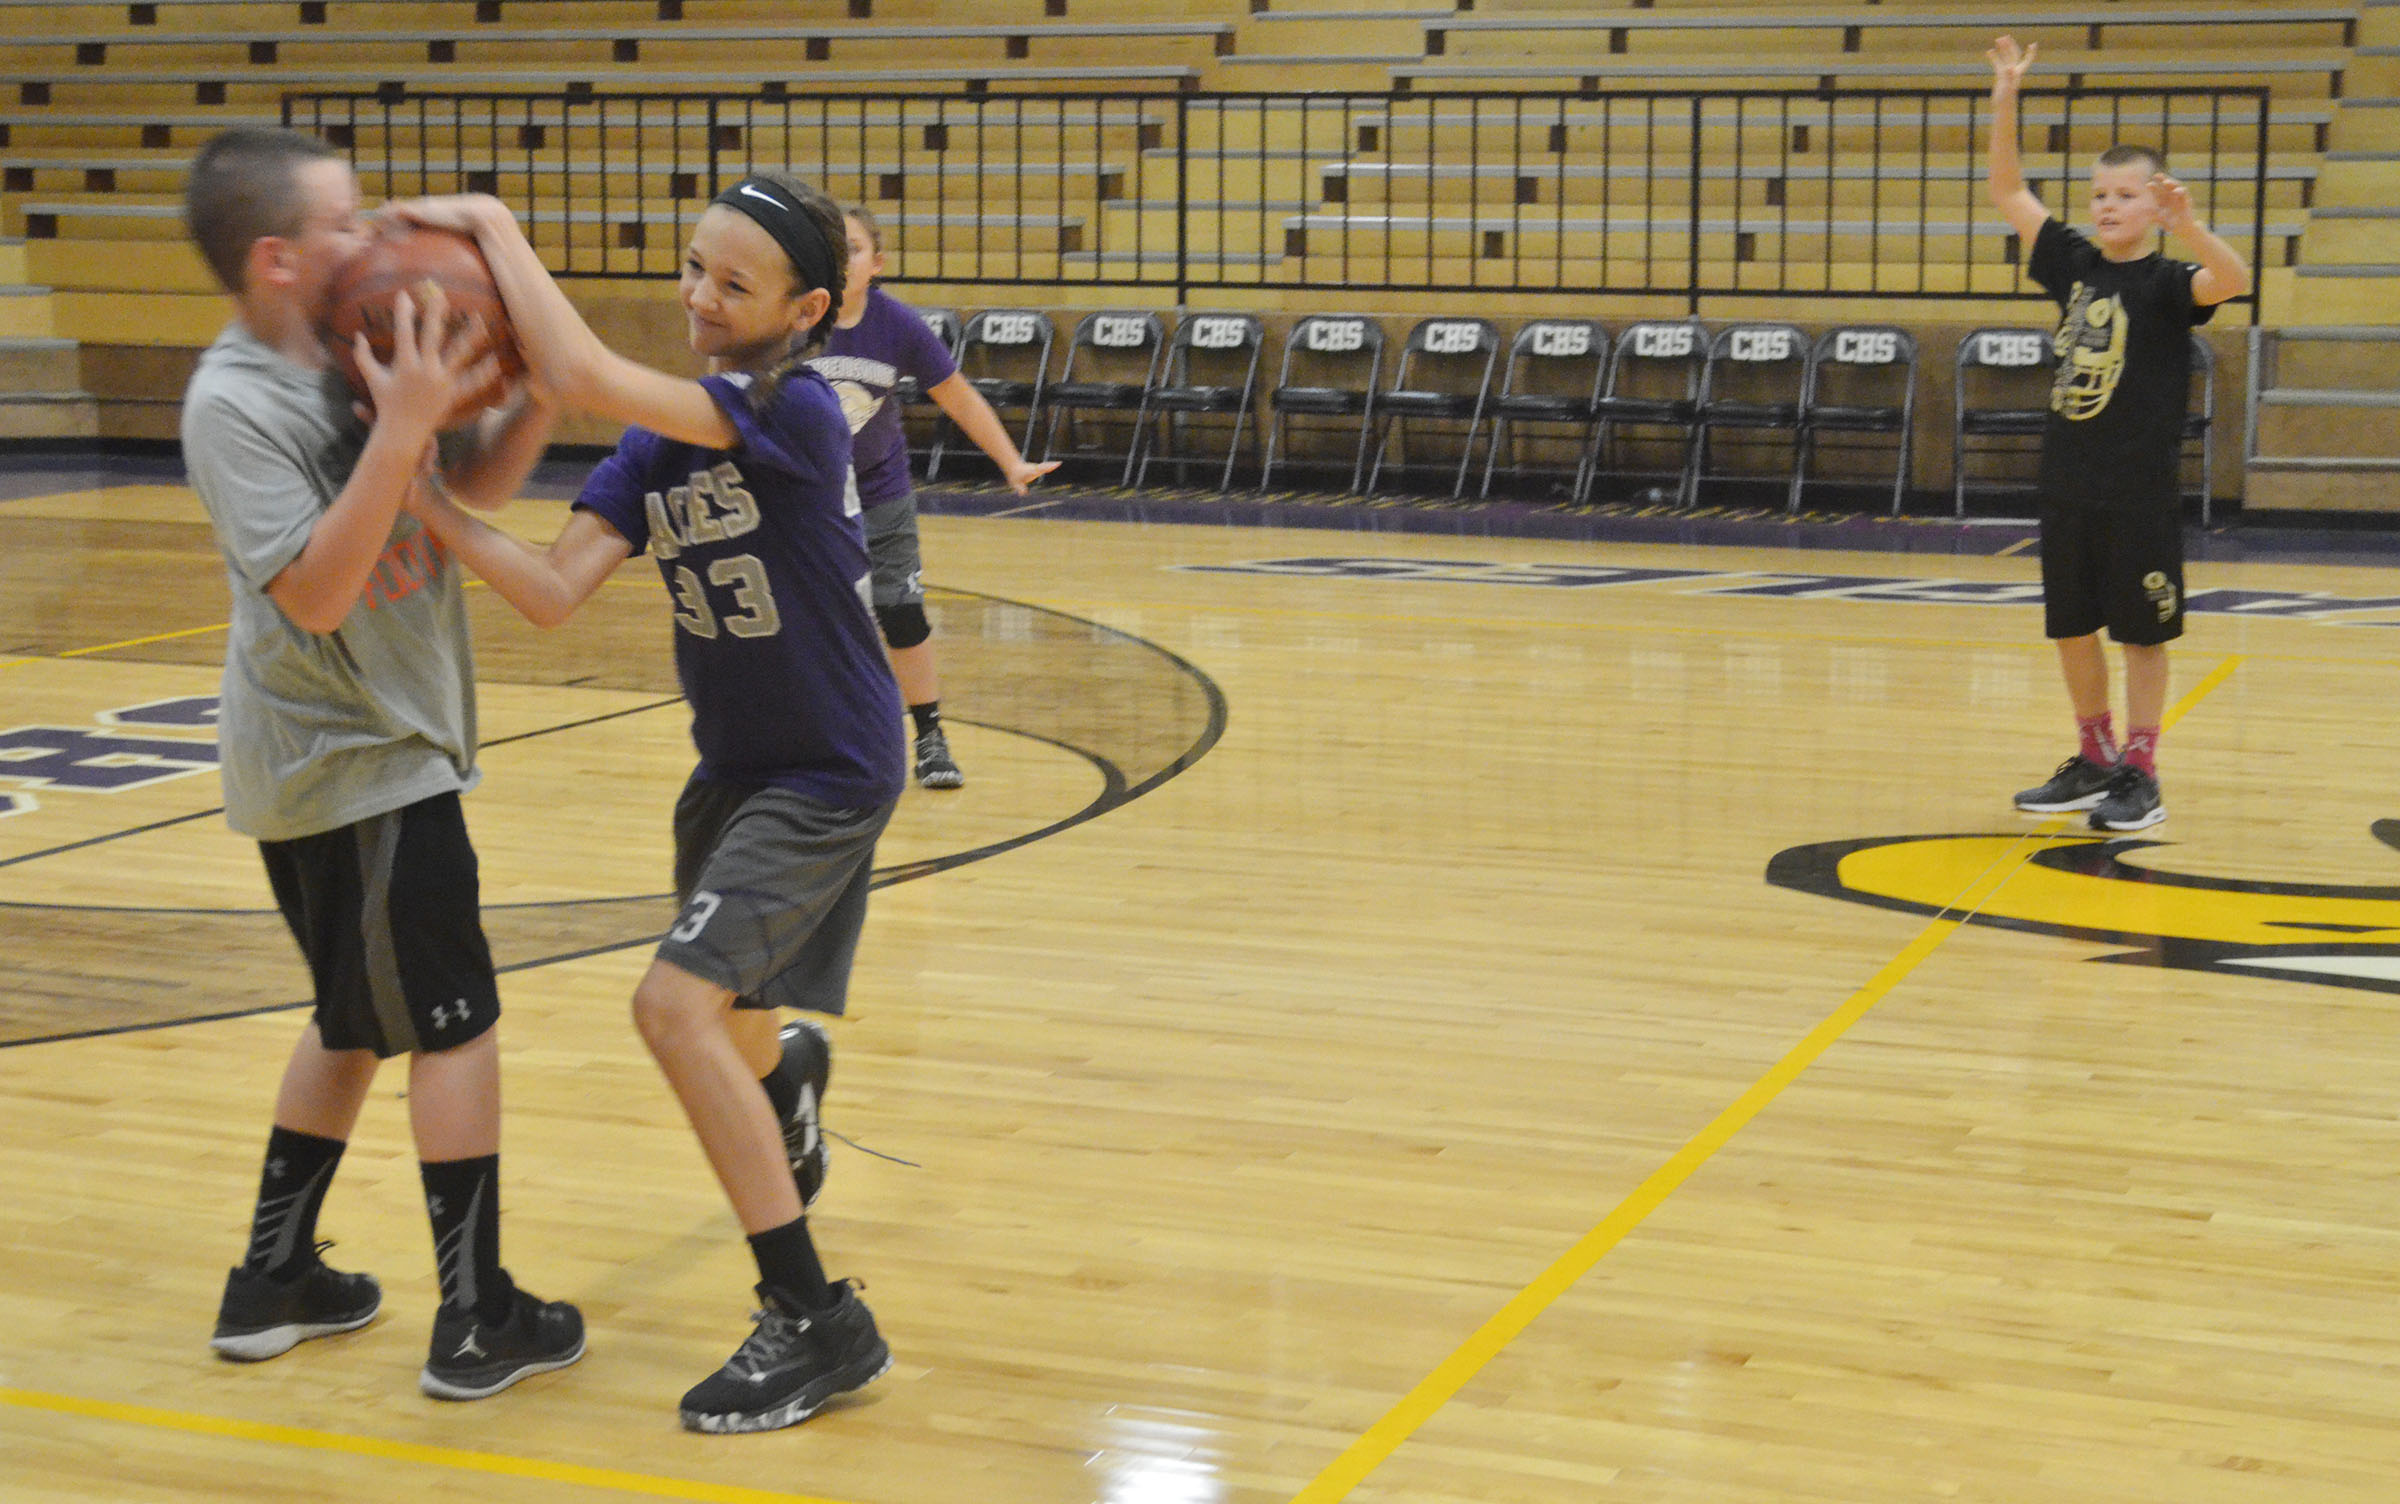 CMS sixth-graders Jacob Judd and Bri Hayes fight for the ball.